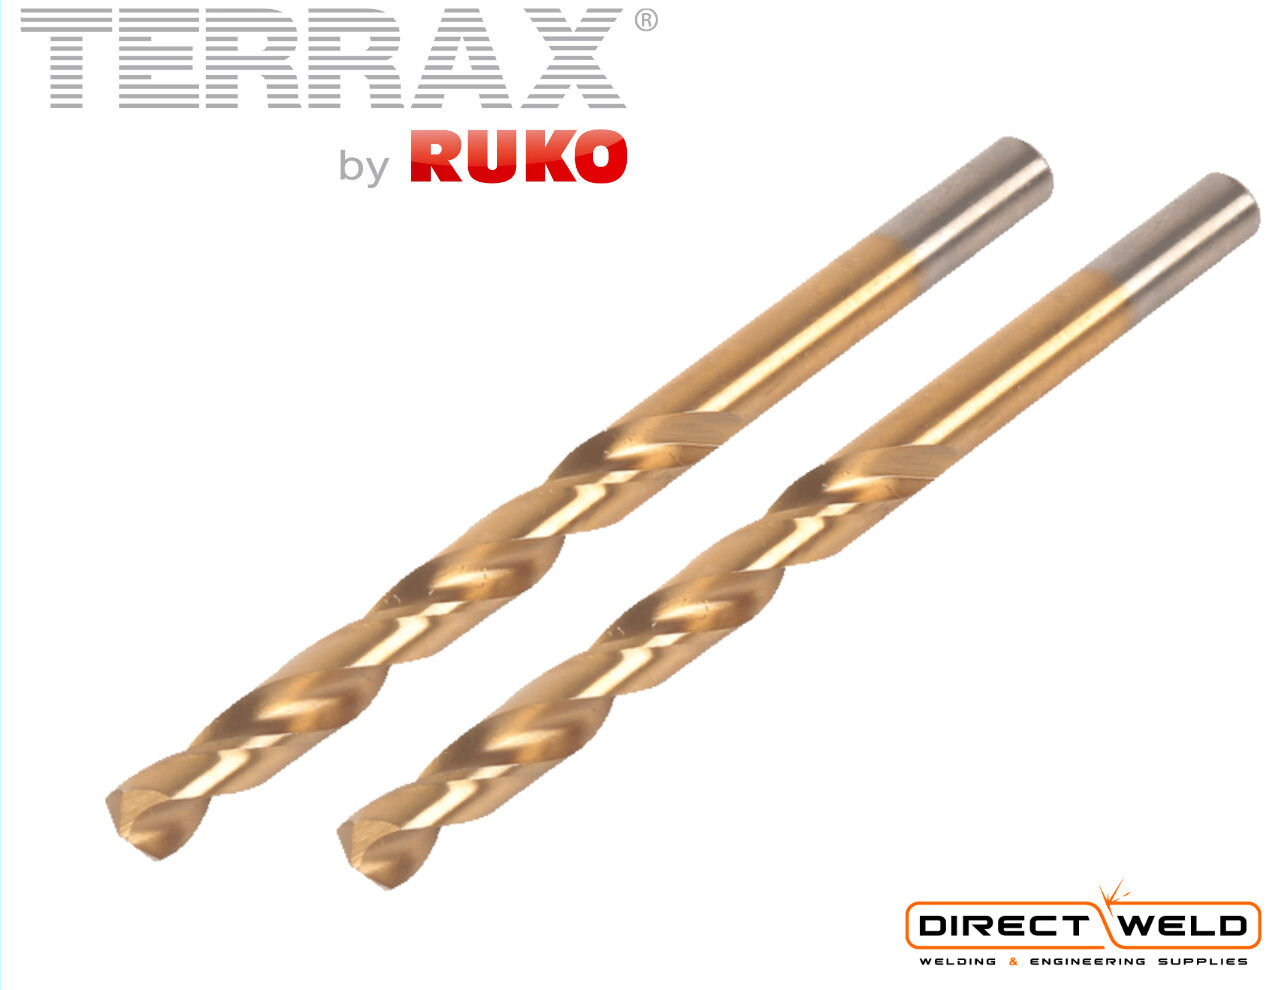 13.0mm HSS-G All Sizes from 1.0mm HIGH QUALITY RUKO Left Hand Drill Bits